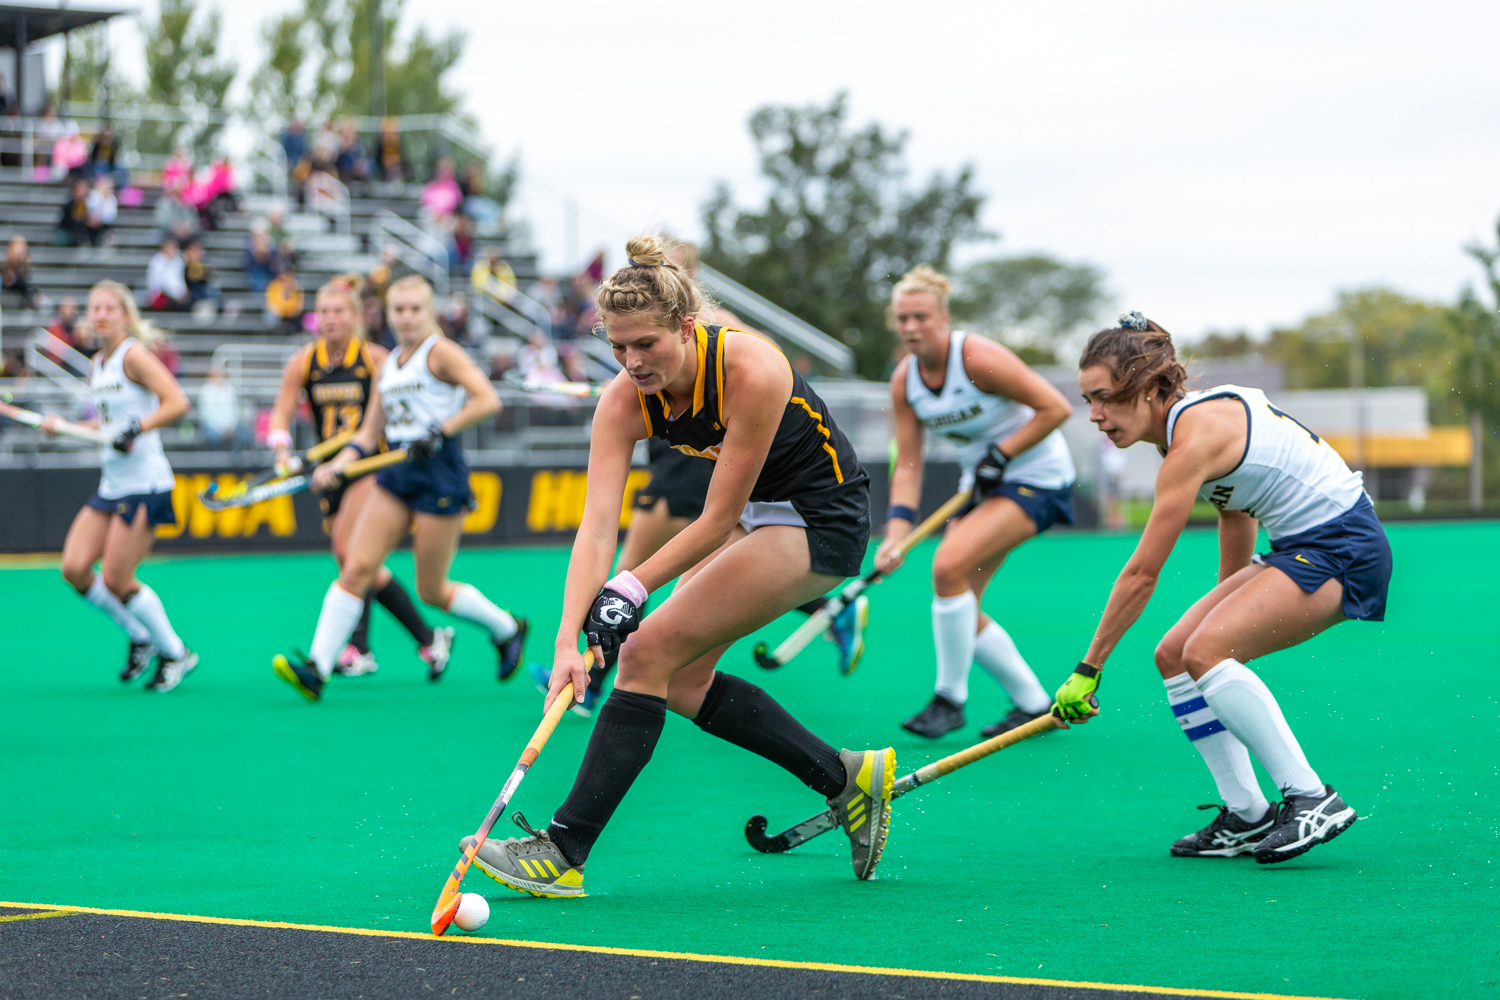 Iowa midfielder Ellie Holley fights to control the ball along the sideline during a field hockey match against Michigan on Friday, Oct. 5, 2018. The no. 6 ranked Wolverines defeated the no. 10 ranked Hawkeyes 2-1.